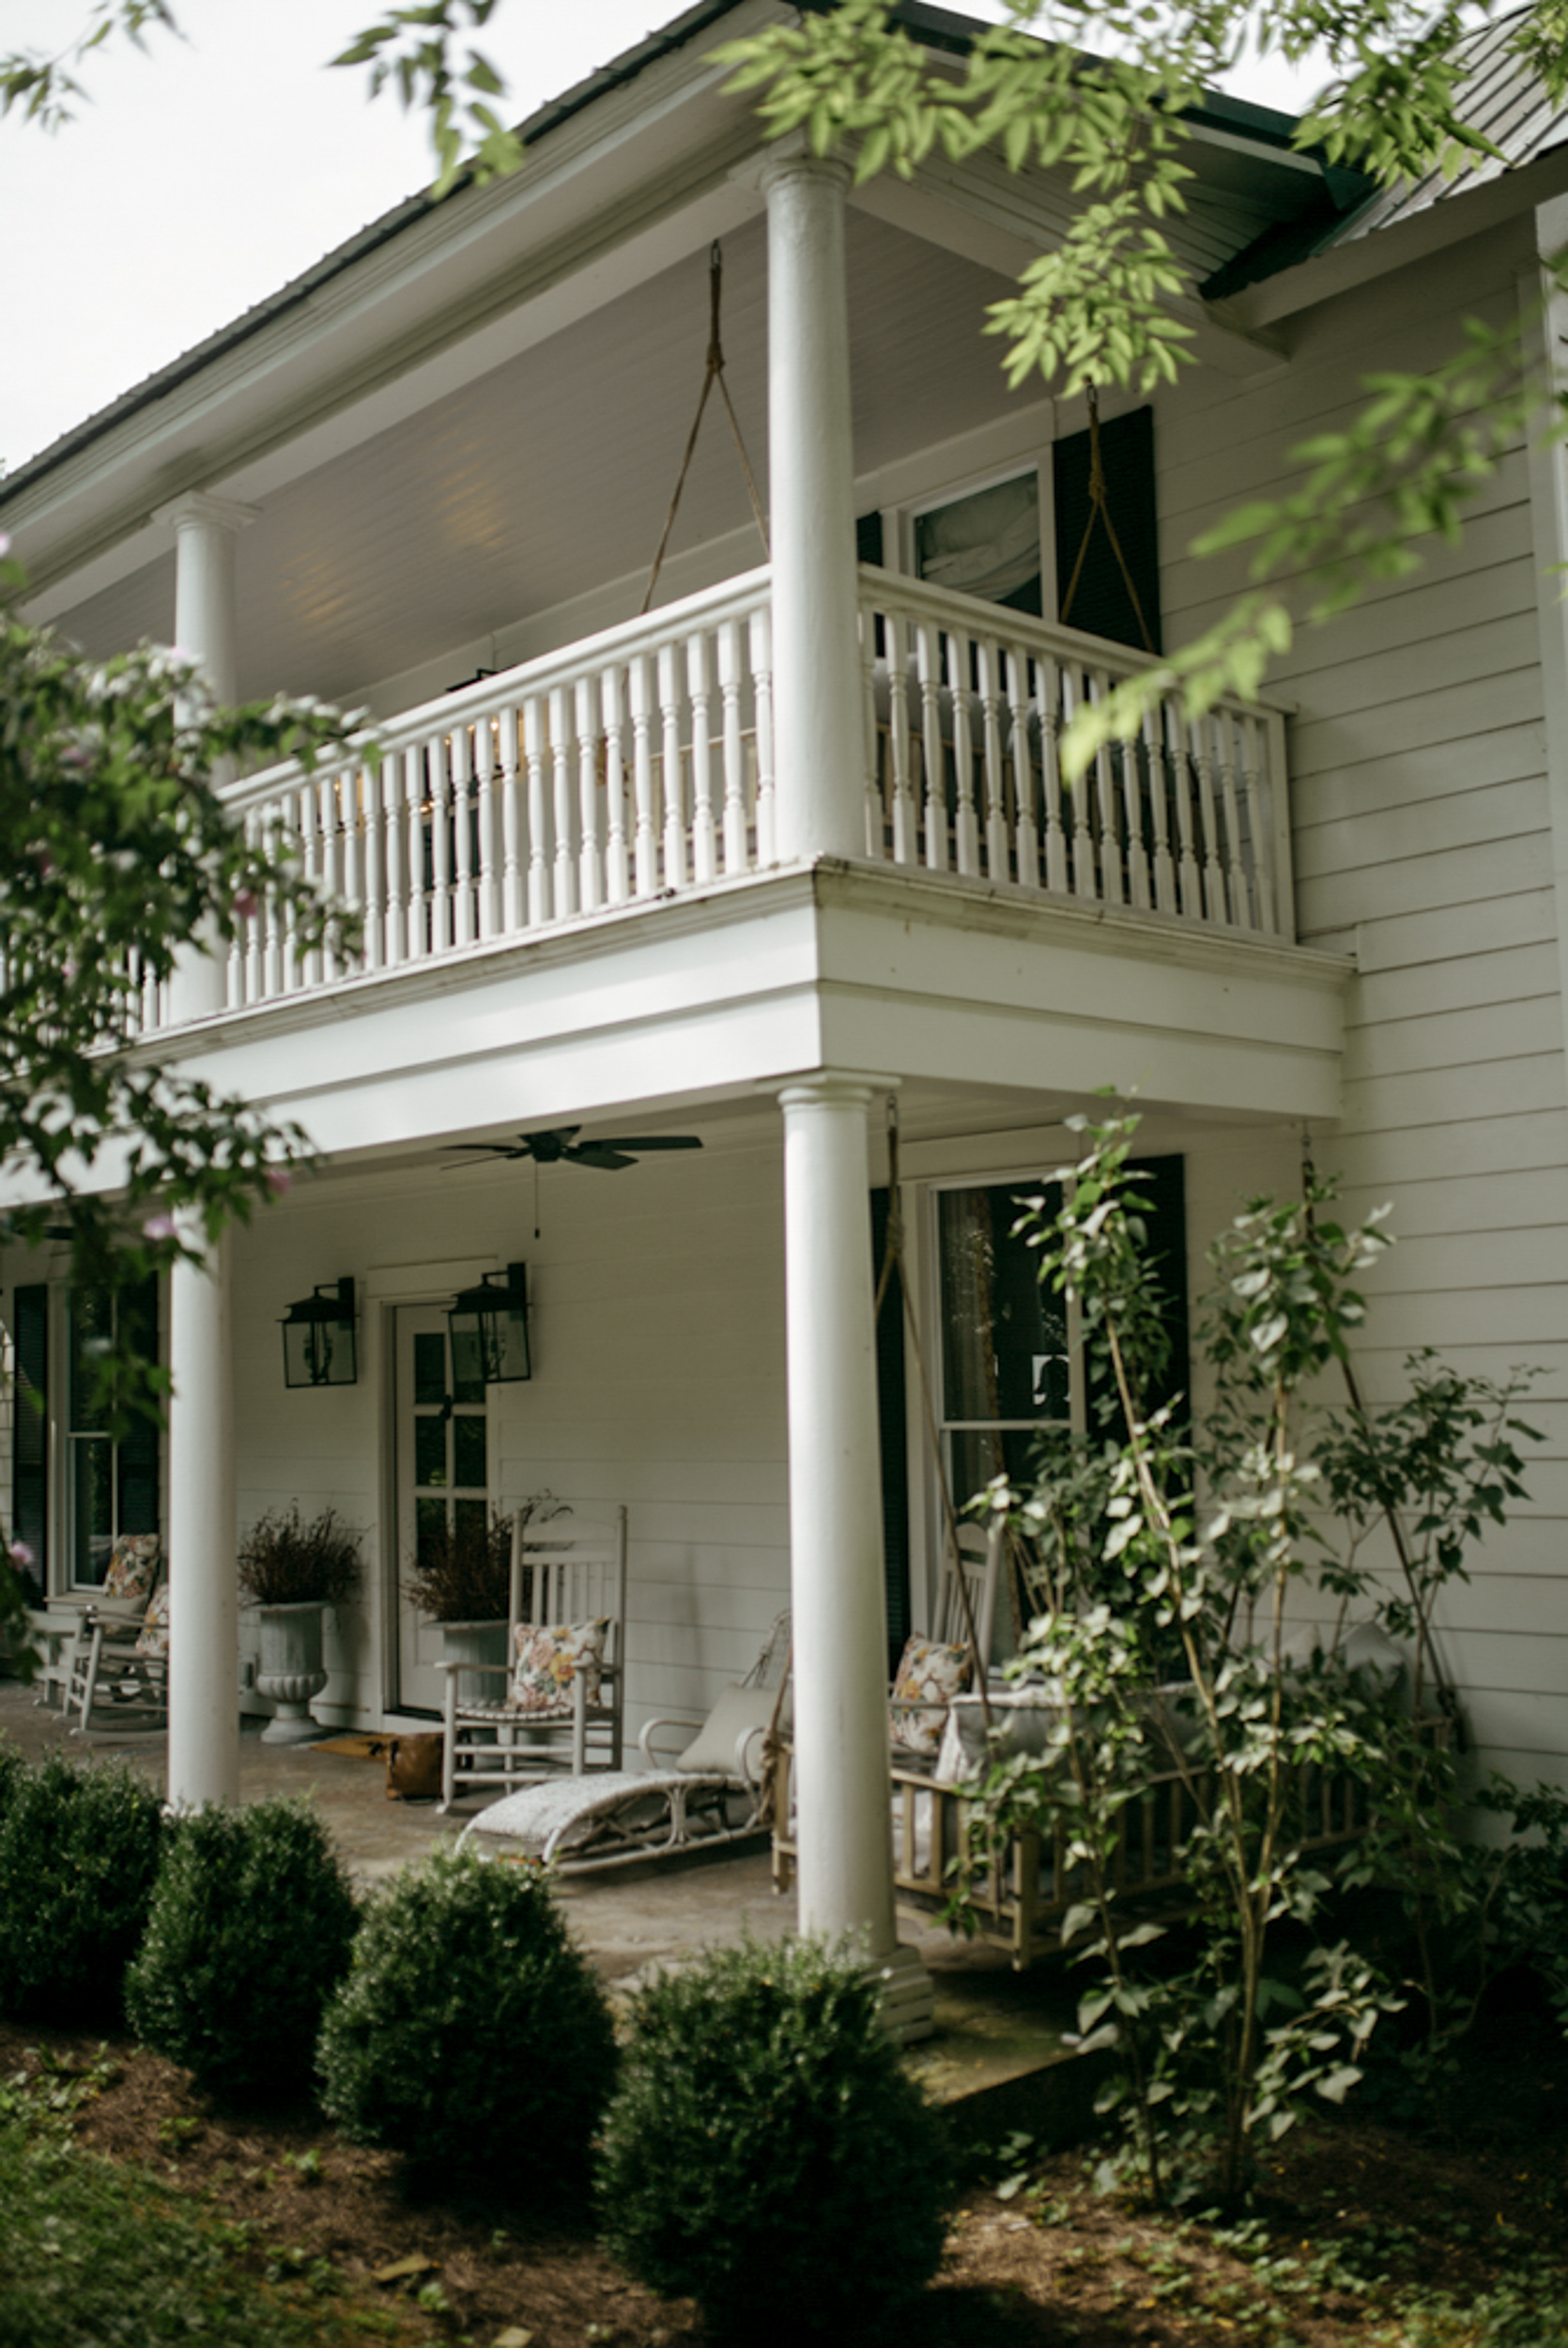 214-mayker-creative-crawfish-boil-summer-party-ideas-rentals-nashville-design-tips-hosting-entertaining-Fox-Country-Farmhouse-Fourth-of-July.jpg